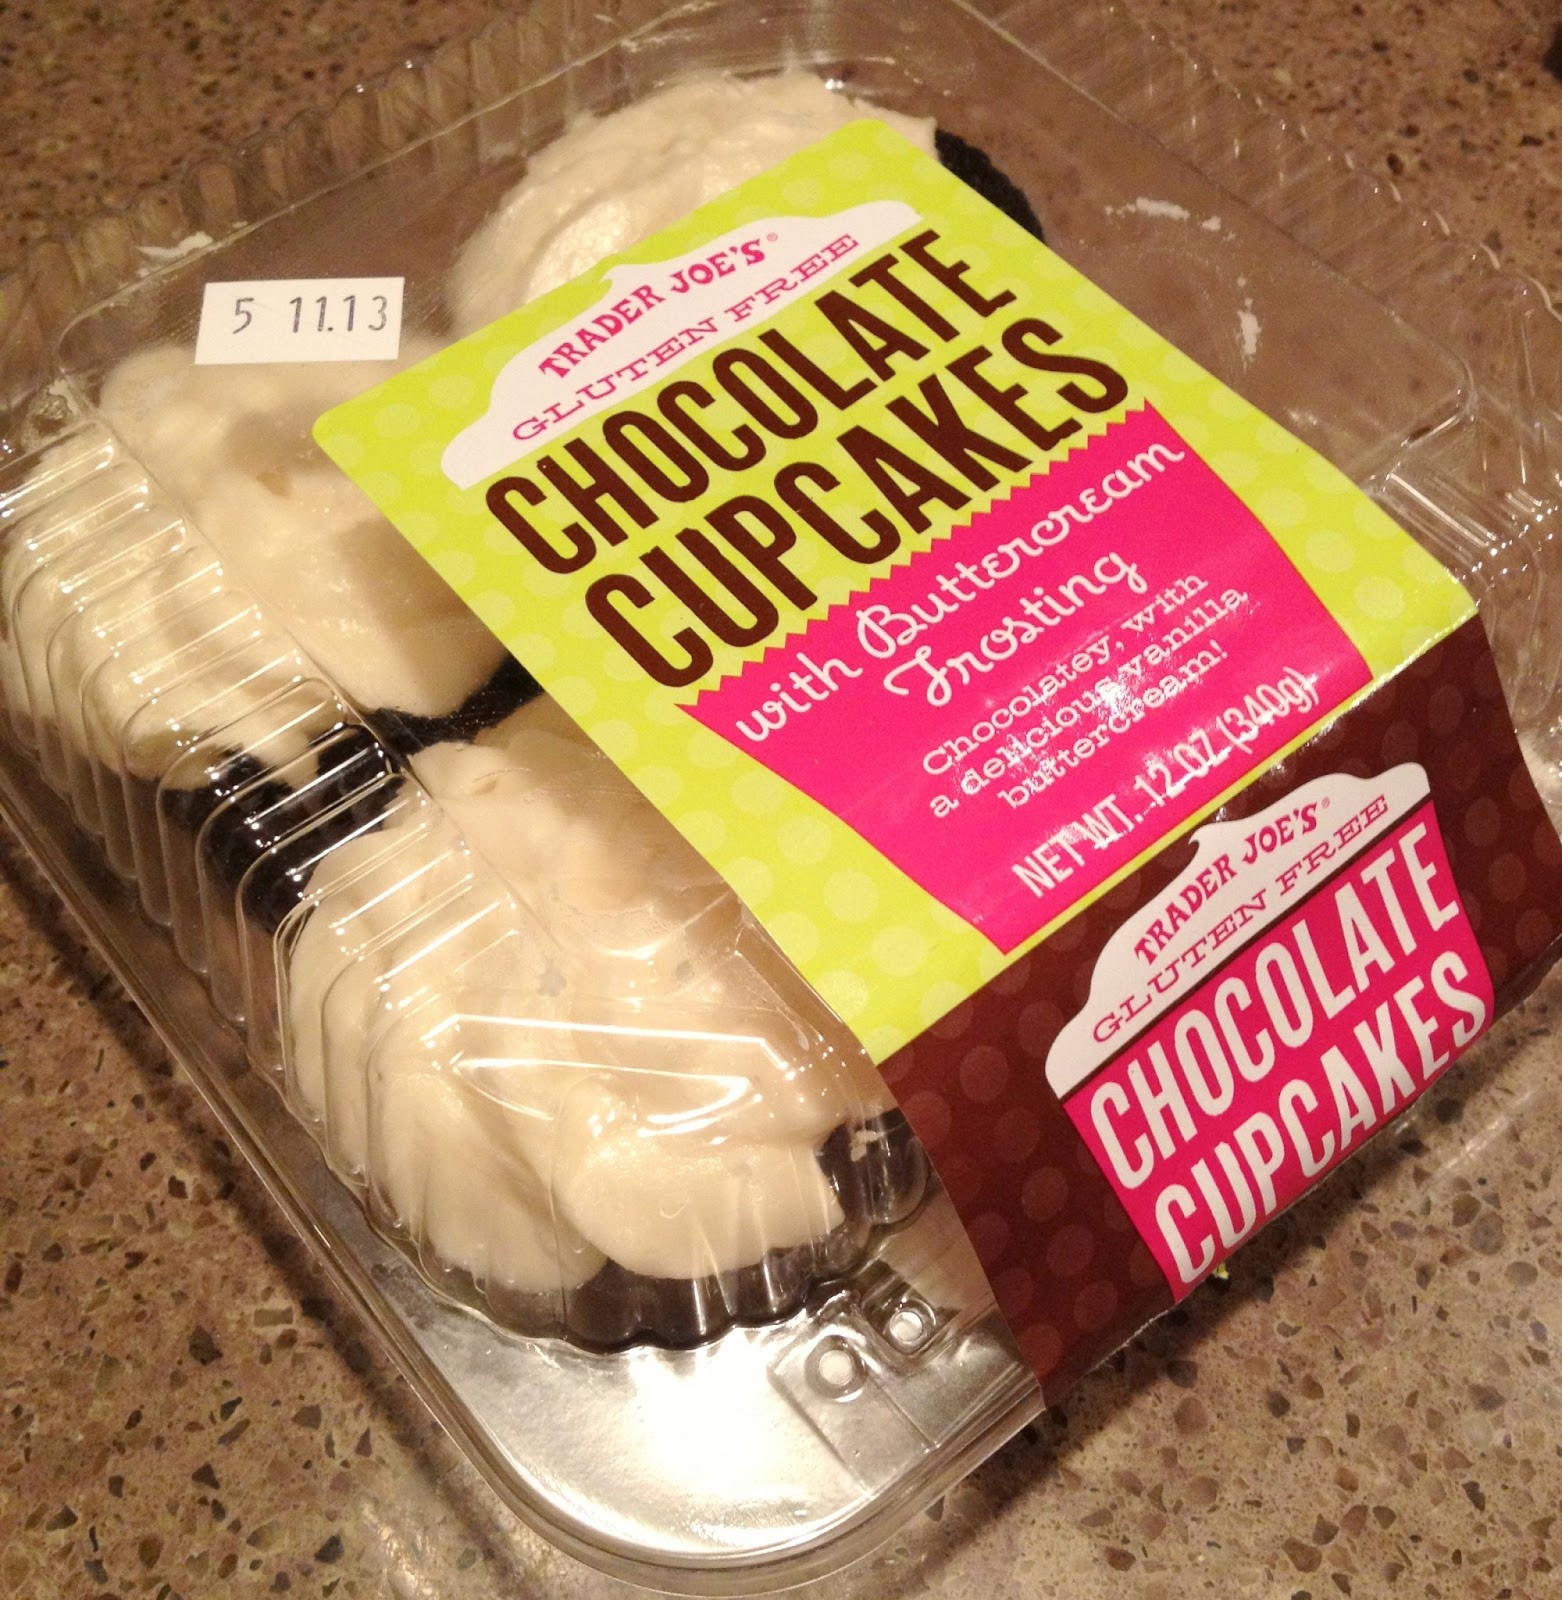 Trader Joe'S Gluten Free Cupcakes  Gluten Free Philly News & Notes May 10 2013